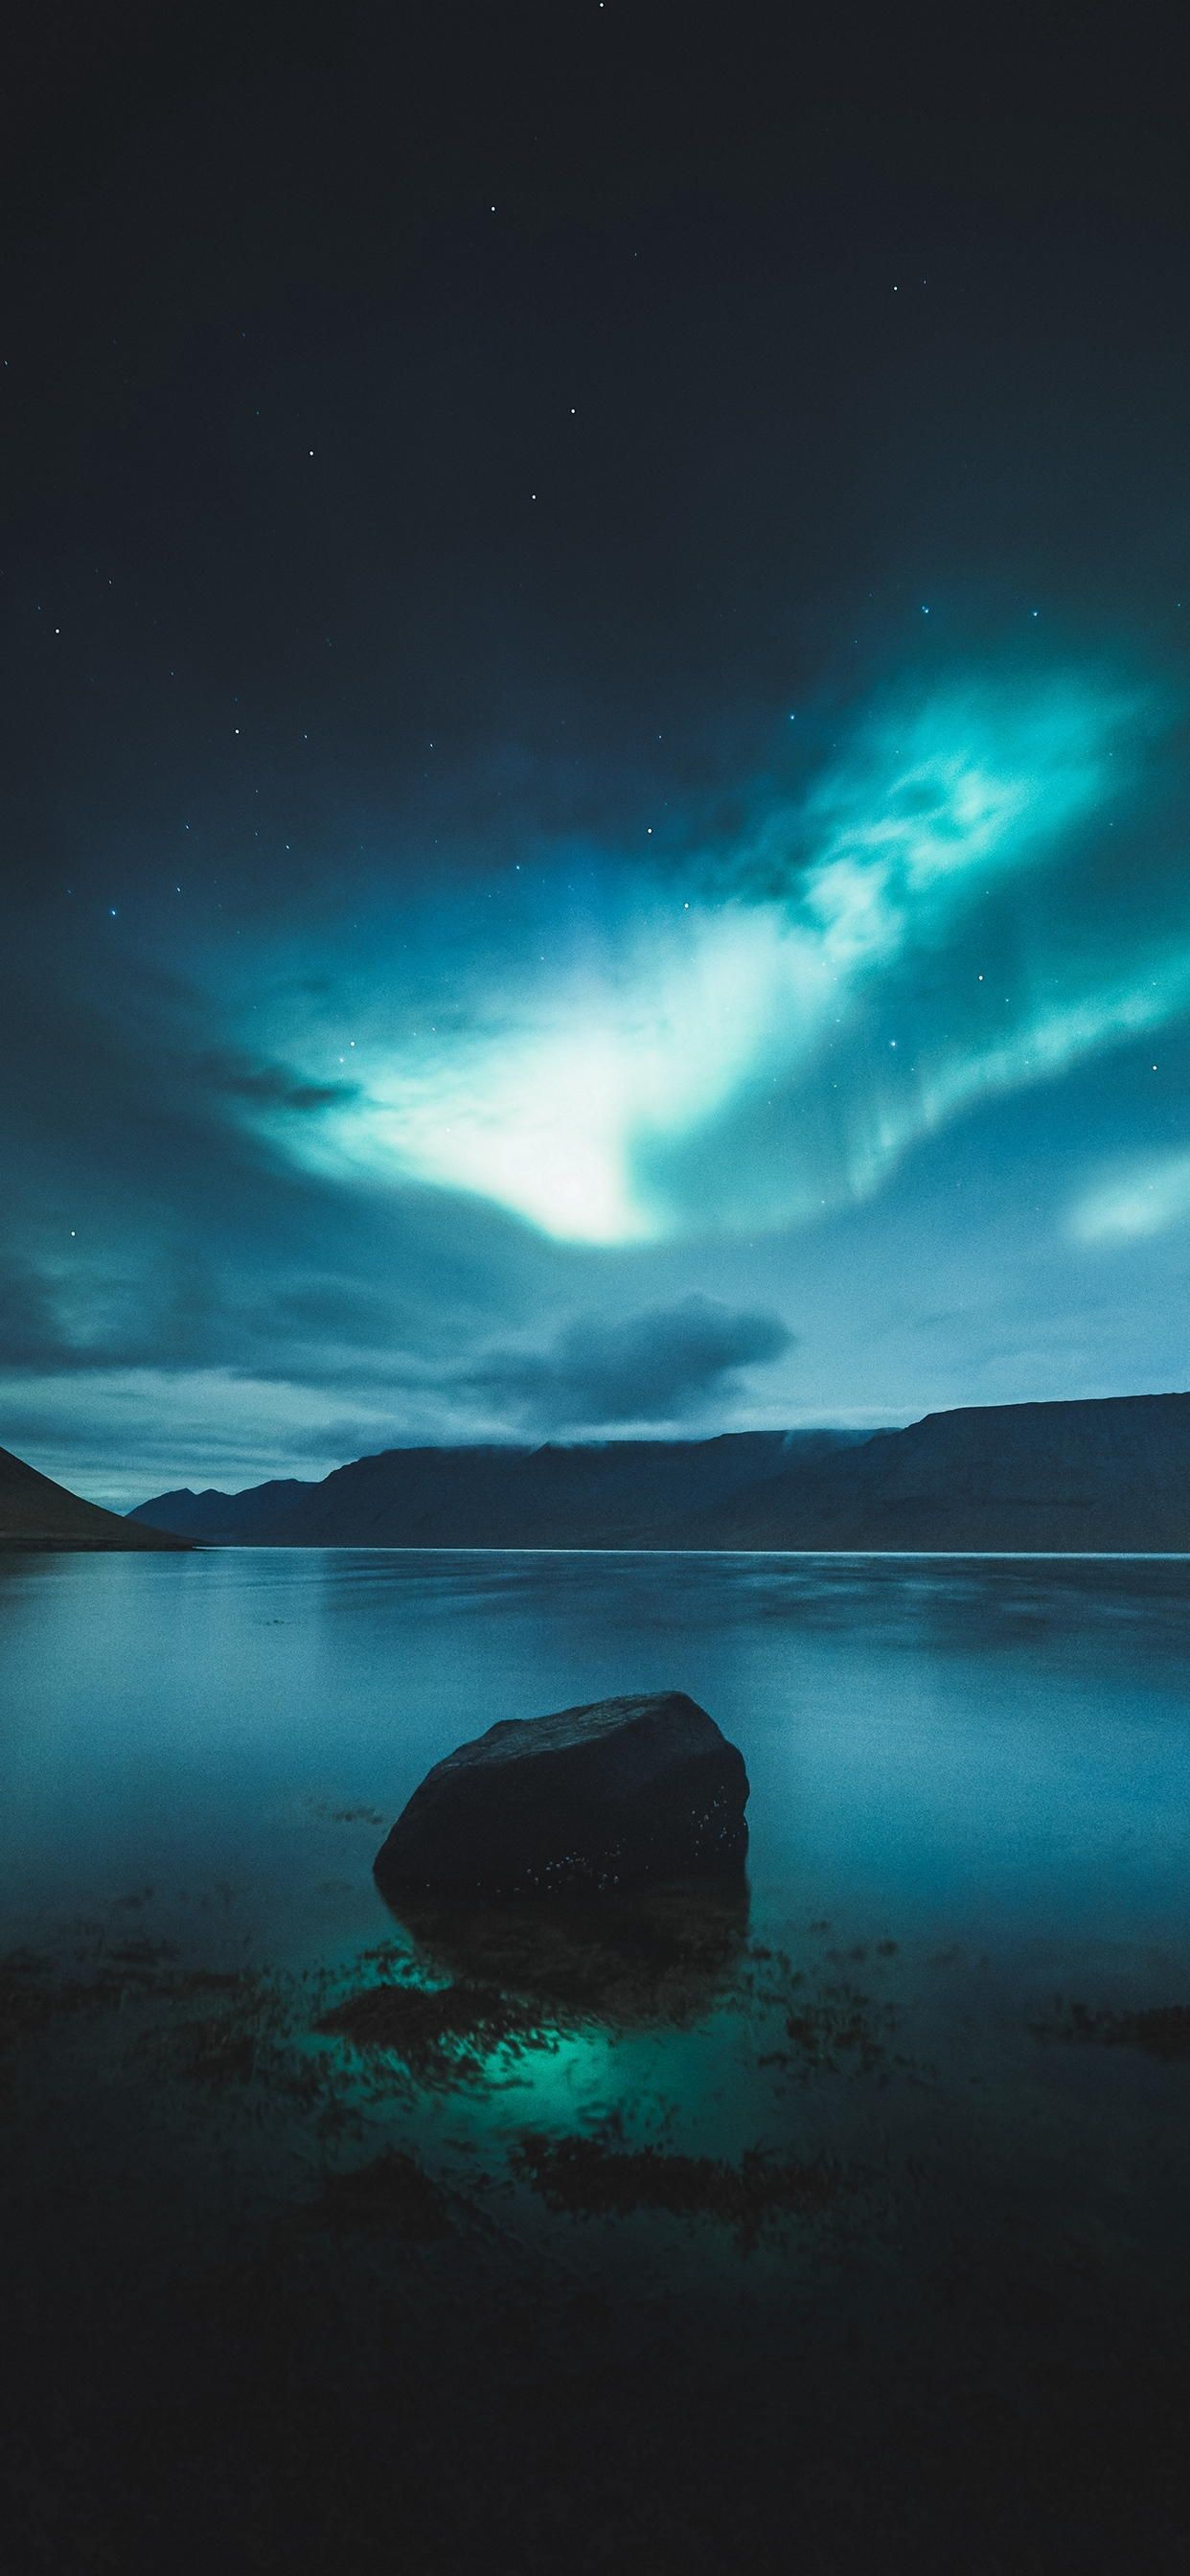 Iphone 11 Pro Max Hd Wallpapers Night Sky Wallpaper Northern Lights Wallpaper Northern Lights Wallpaper Iphone